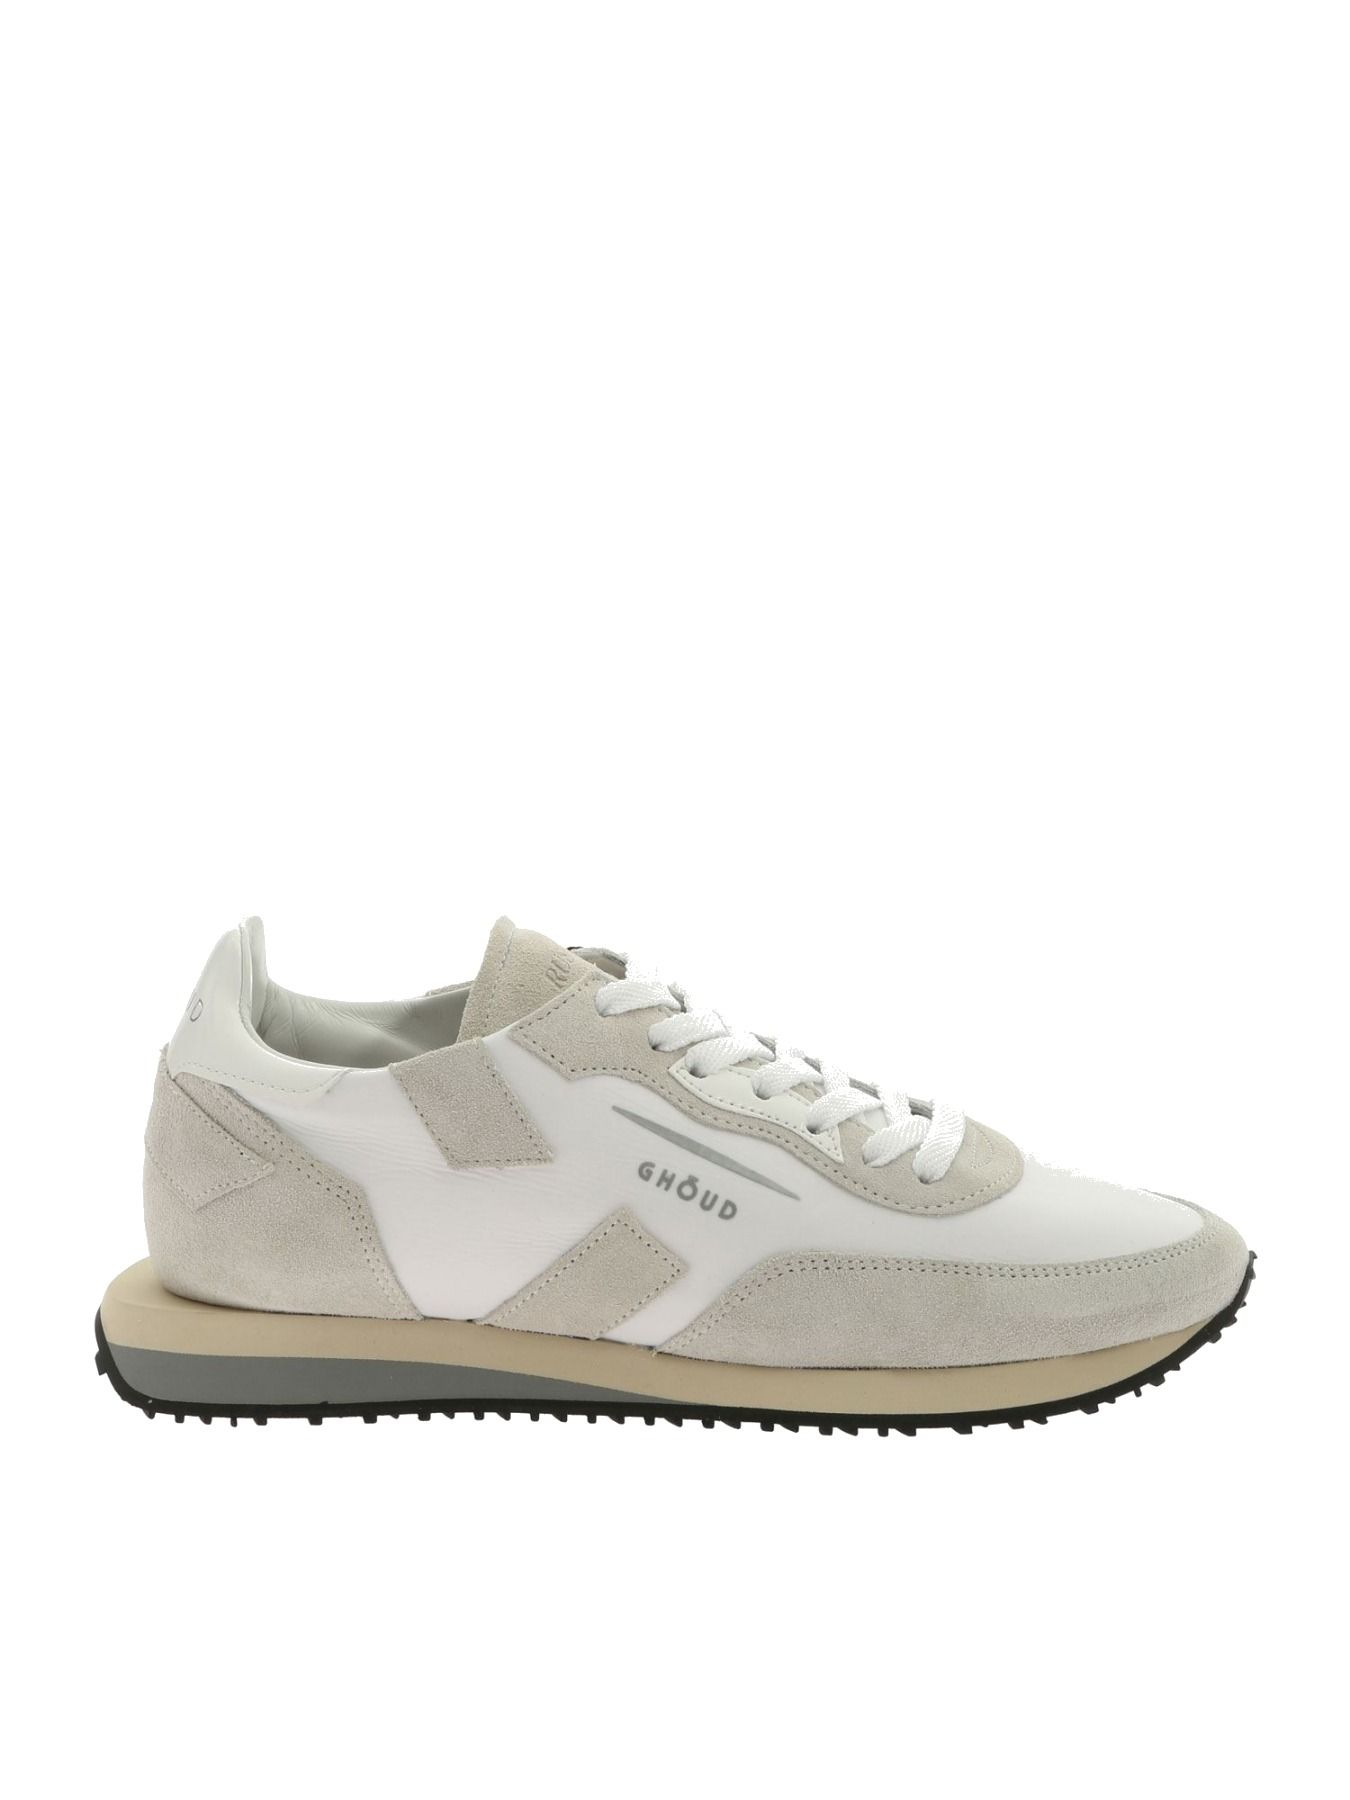 Ghoud Sneakers Leather Rush Low Rslm Nl26 In White